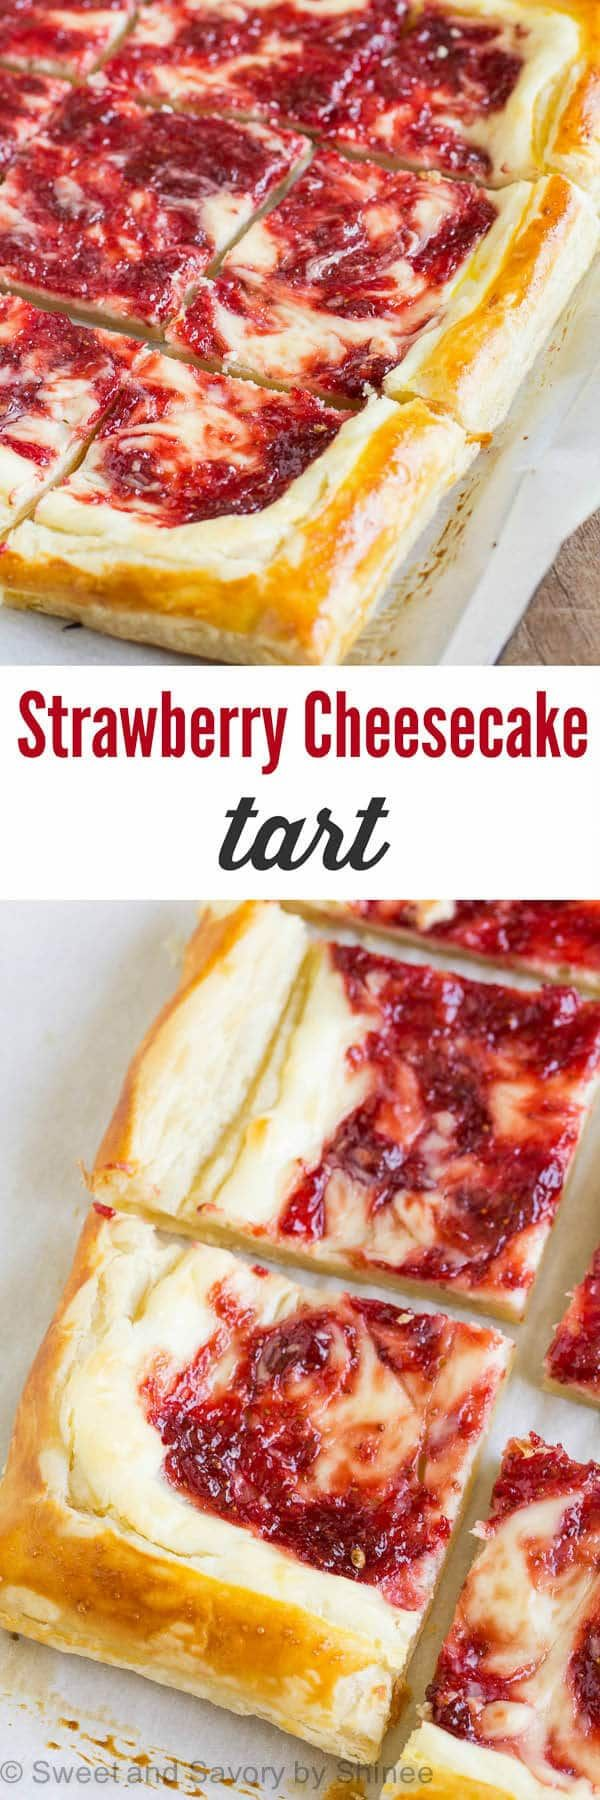 Quick and easy dessert with just 5 ingredients. This strawberry cheesecake tart is perfect to satisfy your sudden cheesecake cravings, or to treat unexpected guests.